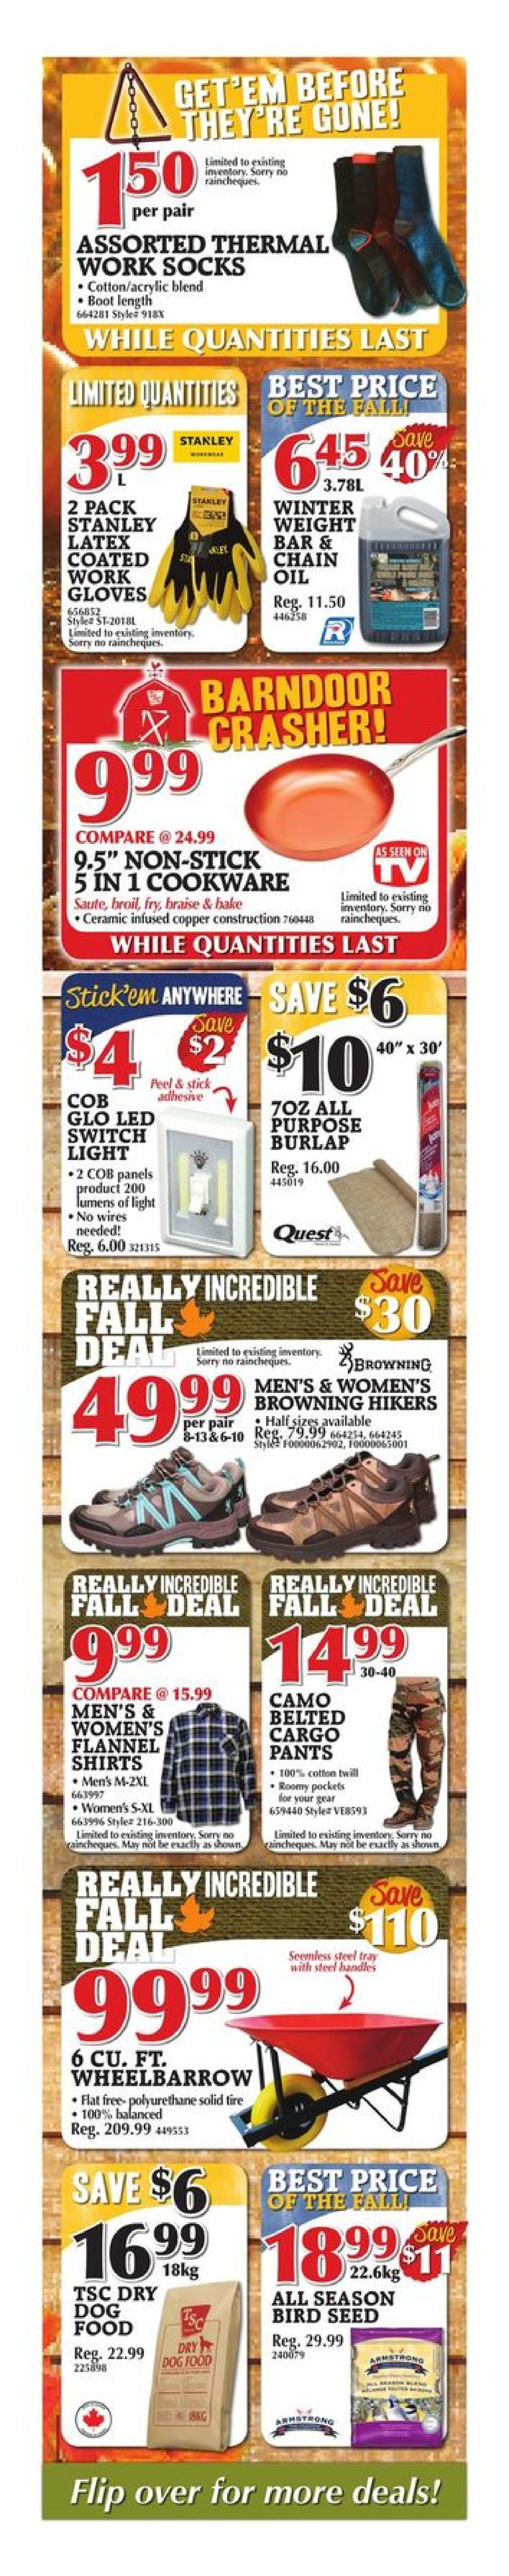 4387d9ef9fb3 TSC Stores Weekly Flyer - Weekly - Really Incredible Fall Sale - Oct 13 –  19 - RedFlagDeals.com